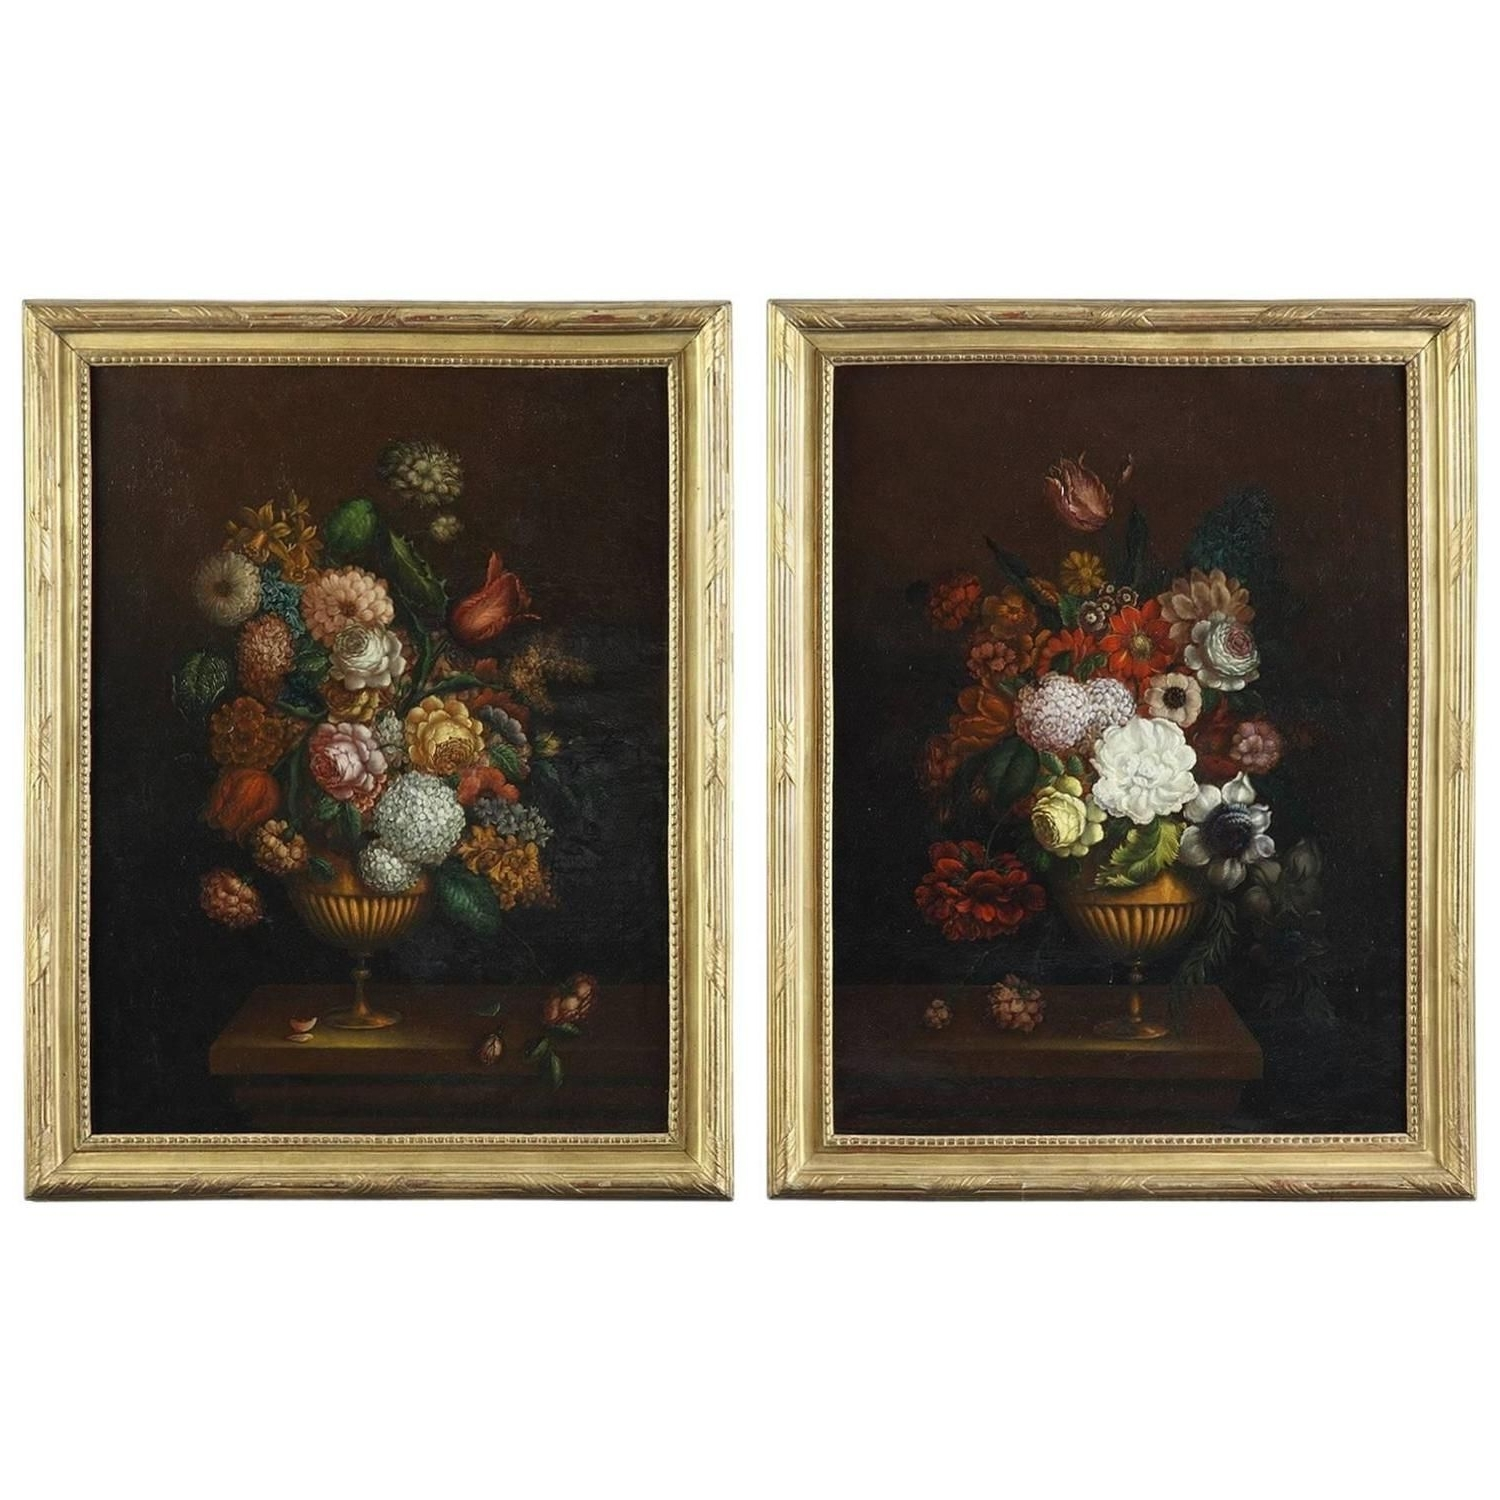 Preferred Canvas Wall Art Pairs Inside Pair Of Oil On Canvas Paintings, Flower Bouquets From 19th Century (View 15 of 15)